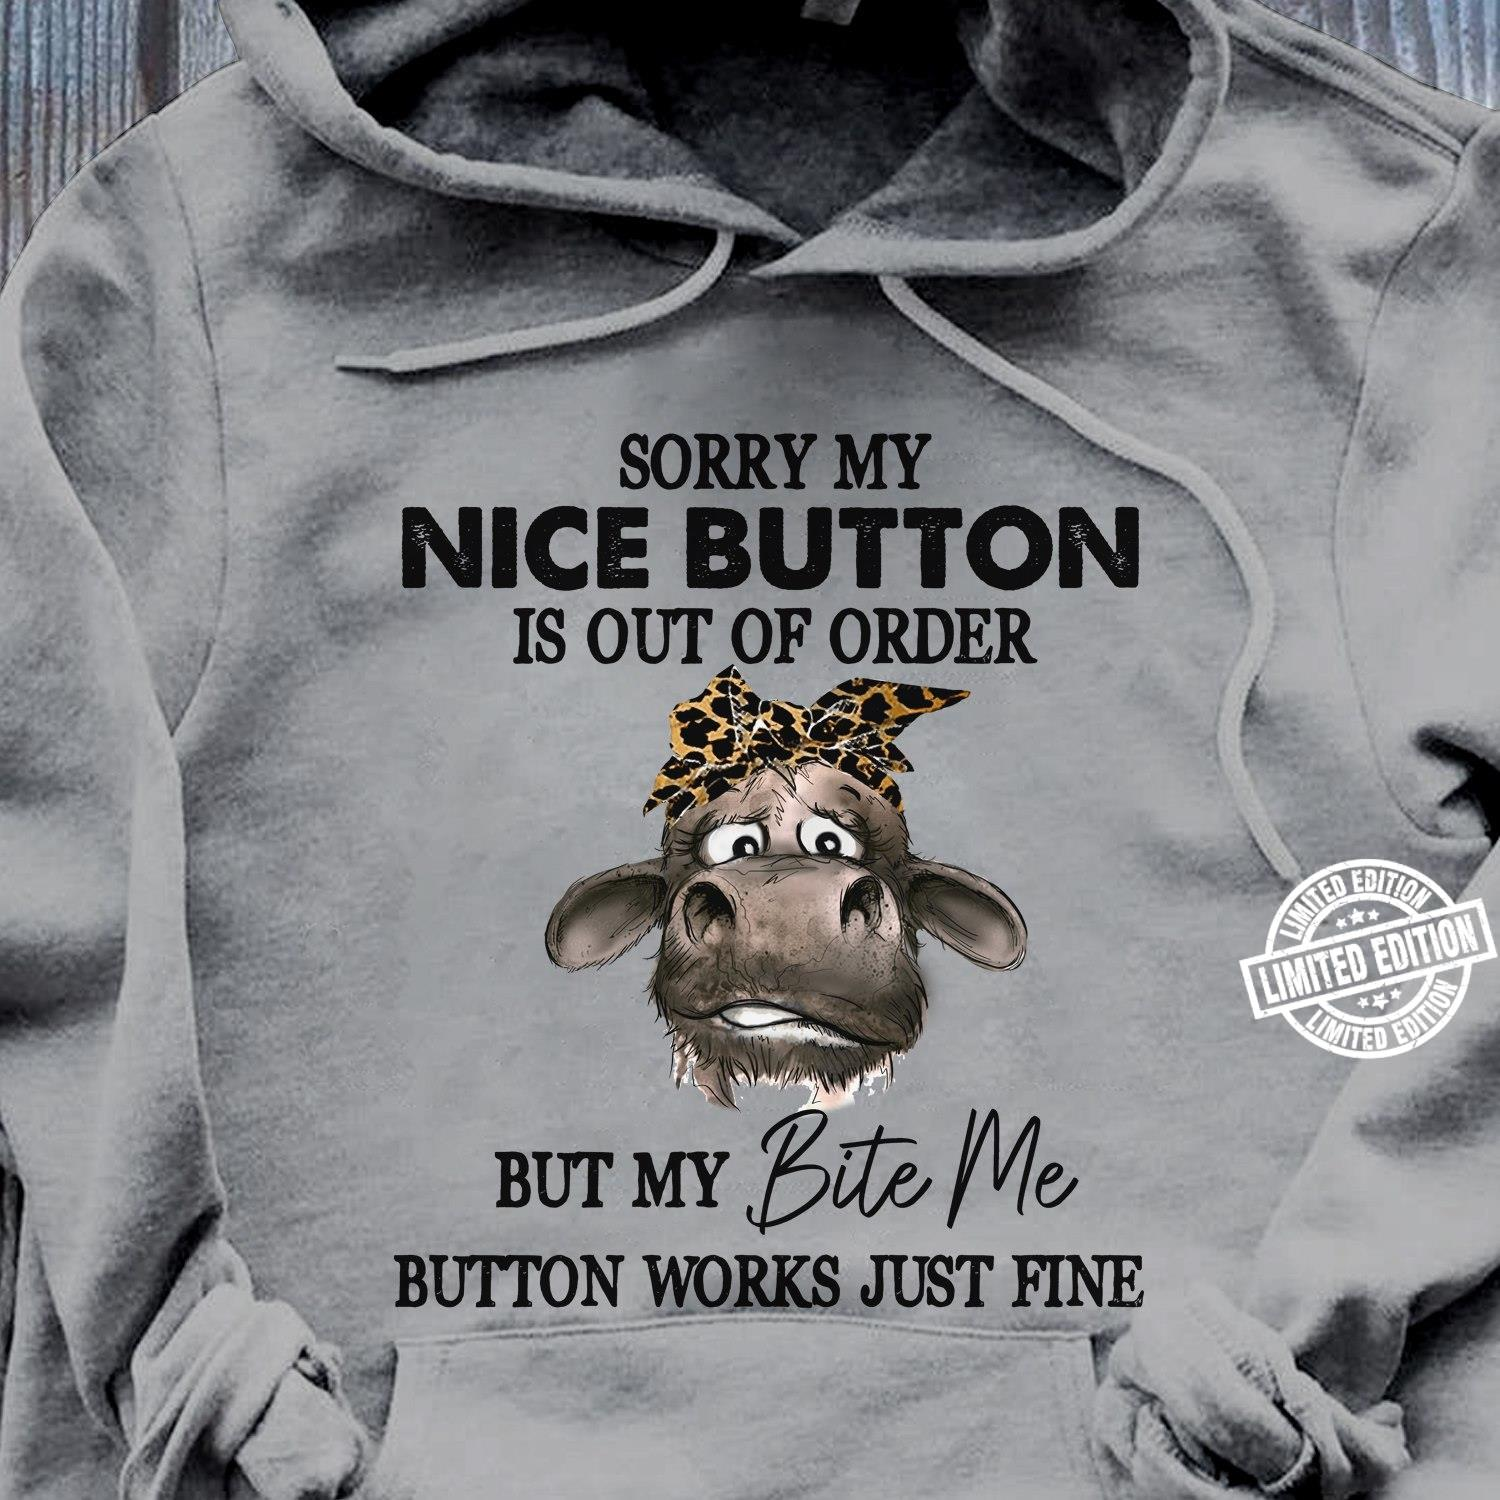 Sorry my nice button is out of order but my bite me button works just fine shirt